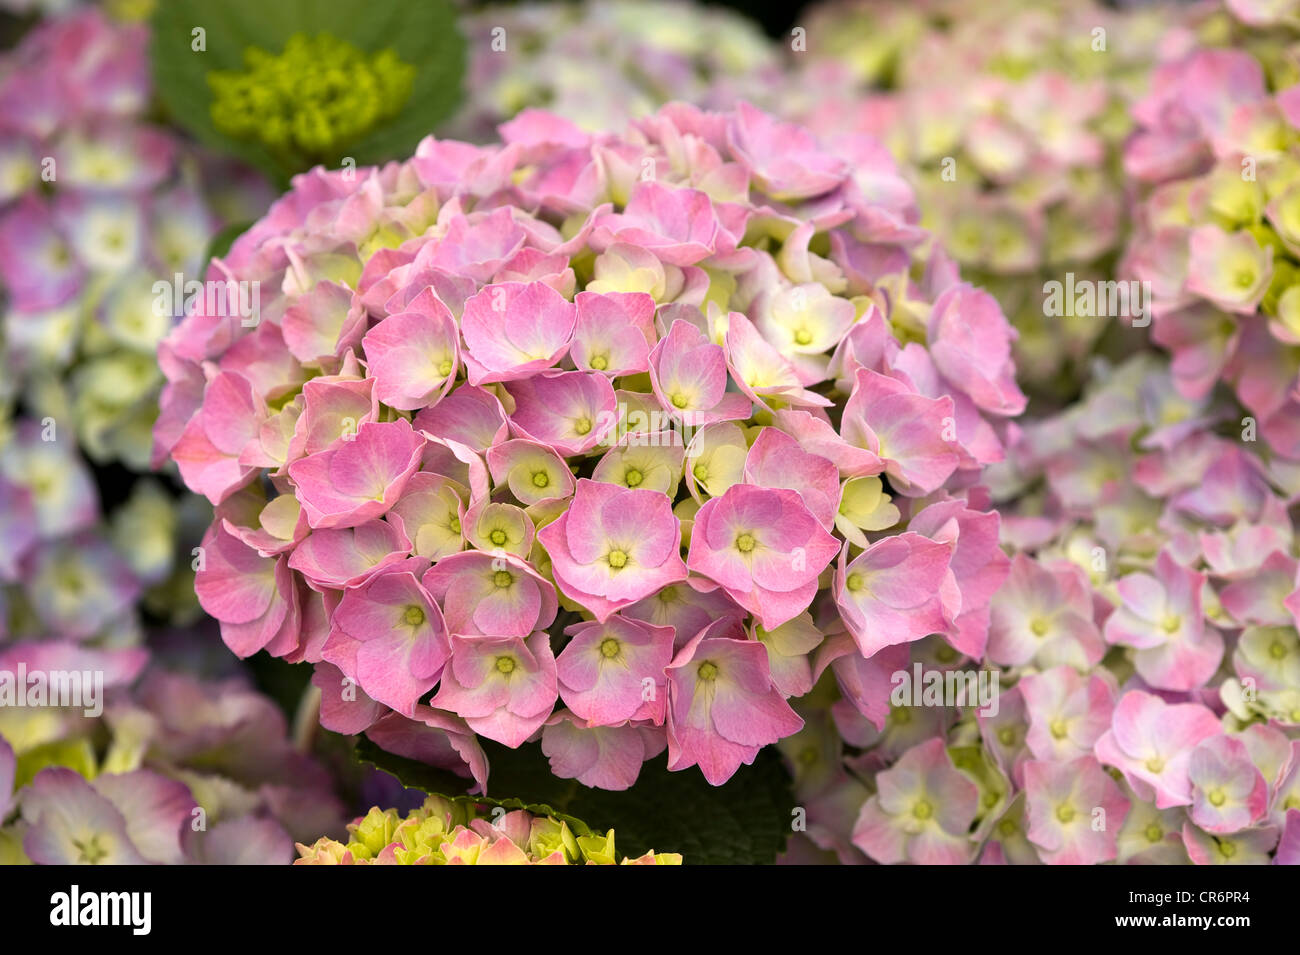 hydrangea flower head in bloom pink colour - Stock Image